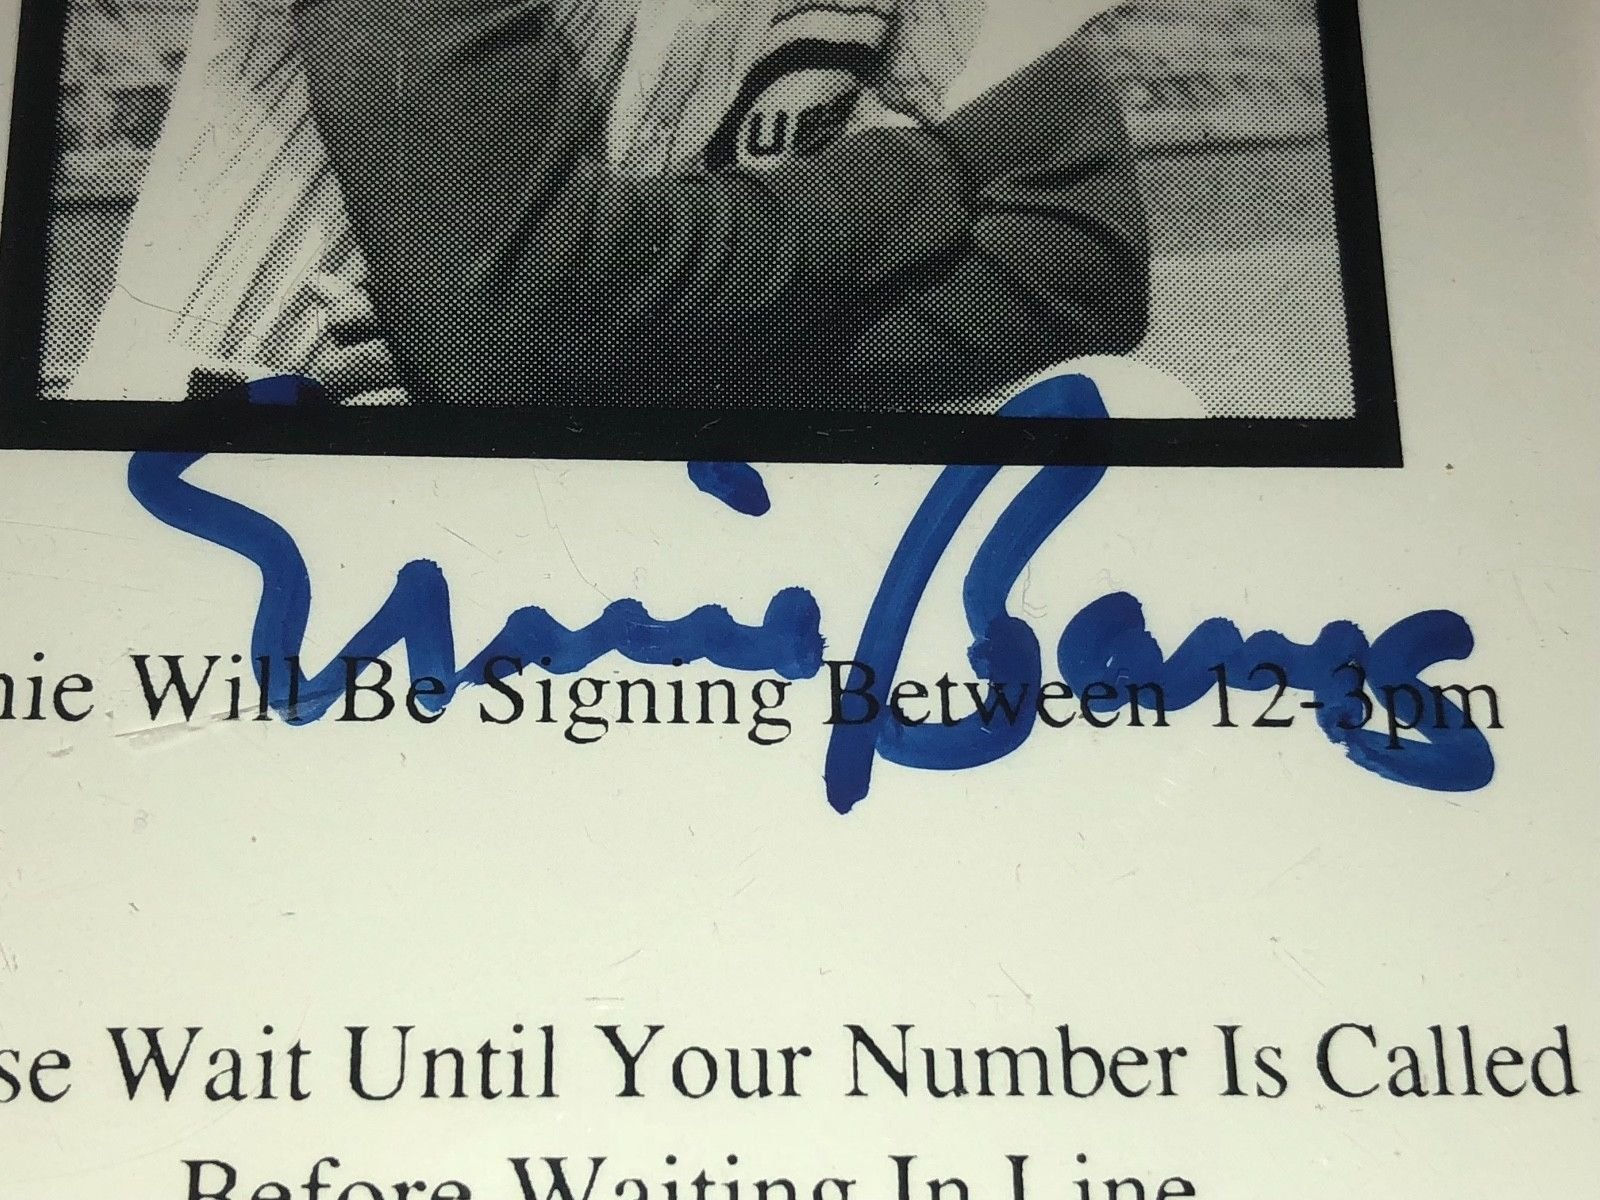 Ernie Banks Autographed Signed Autograph PSA/DNA Authentic Memorabilia Signature Ticket Cubs Hall of Fame Baseball MLB